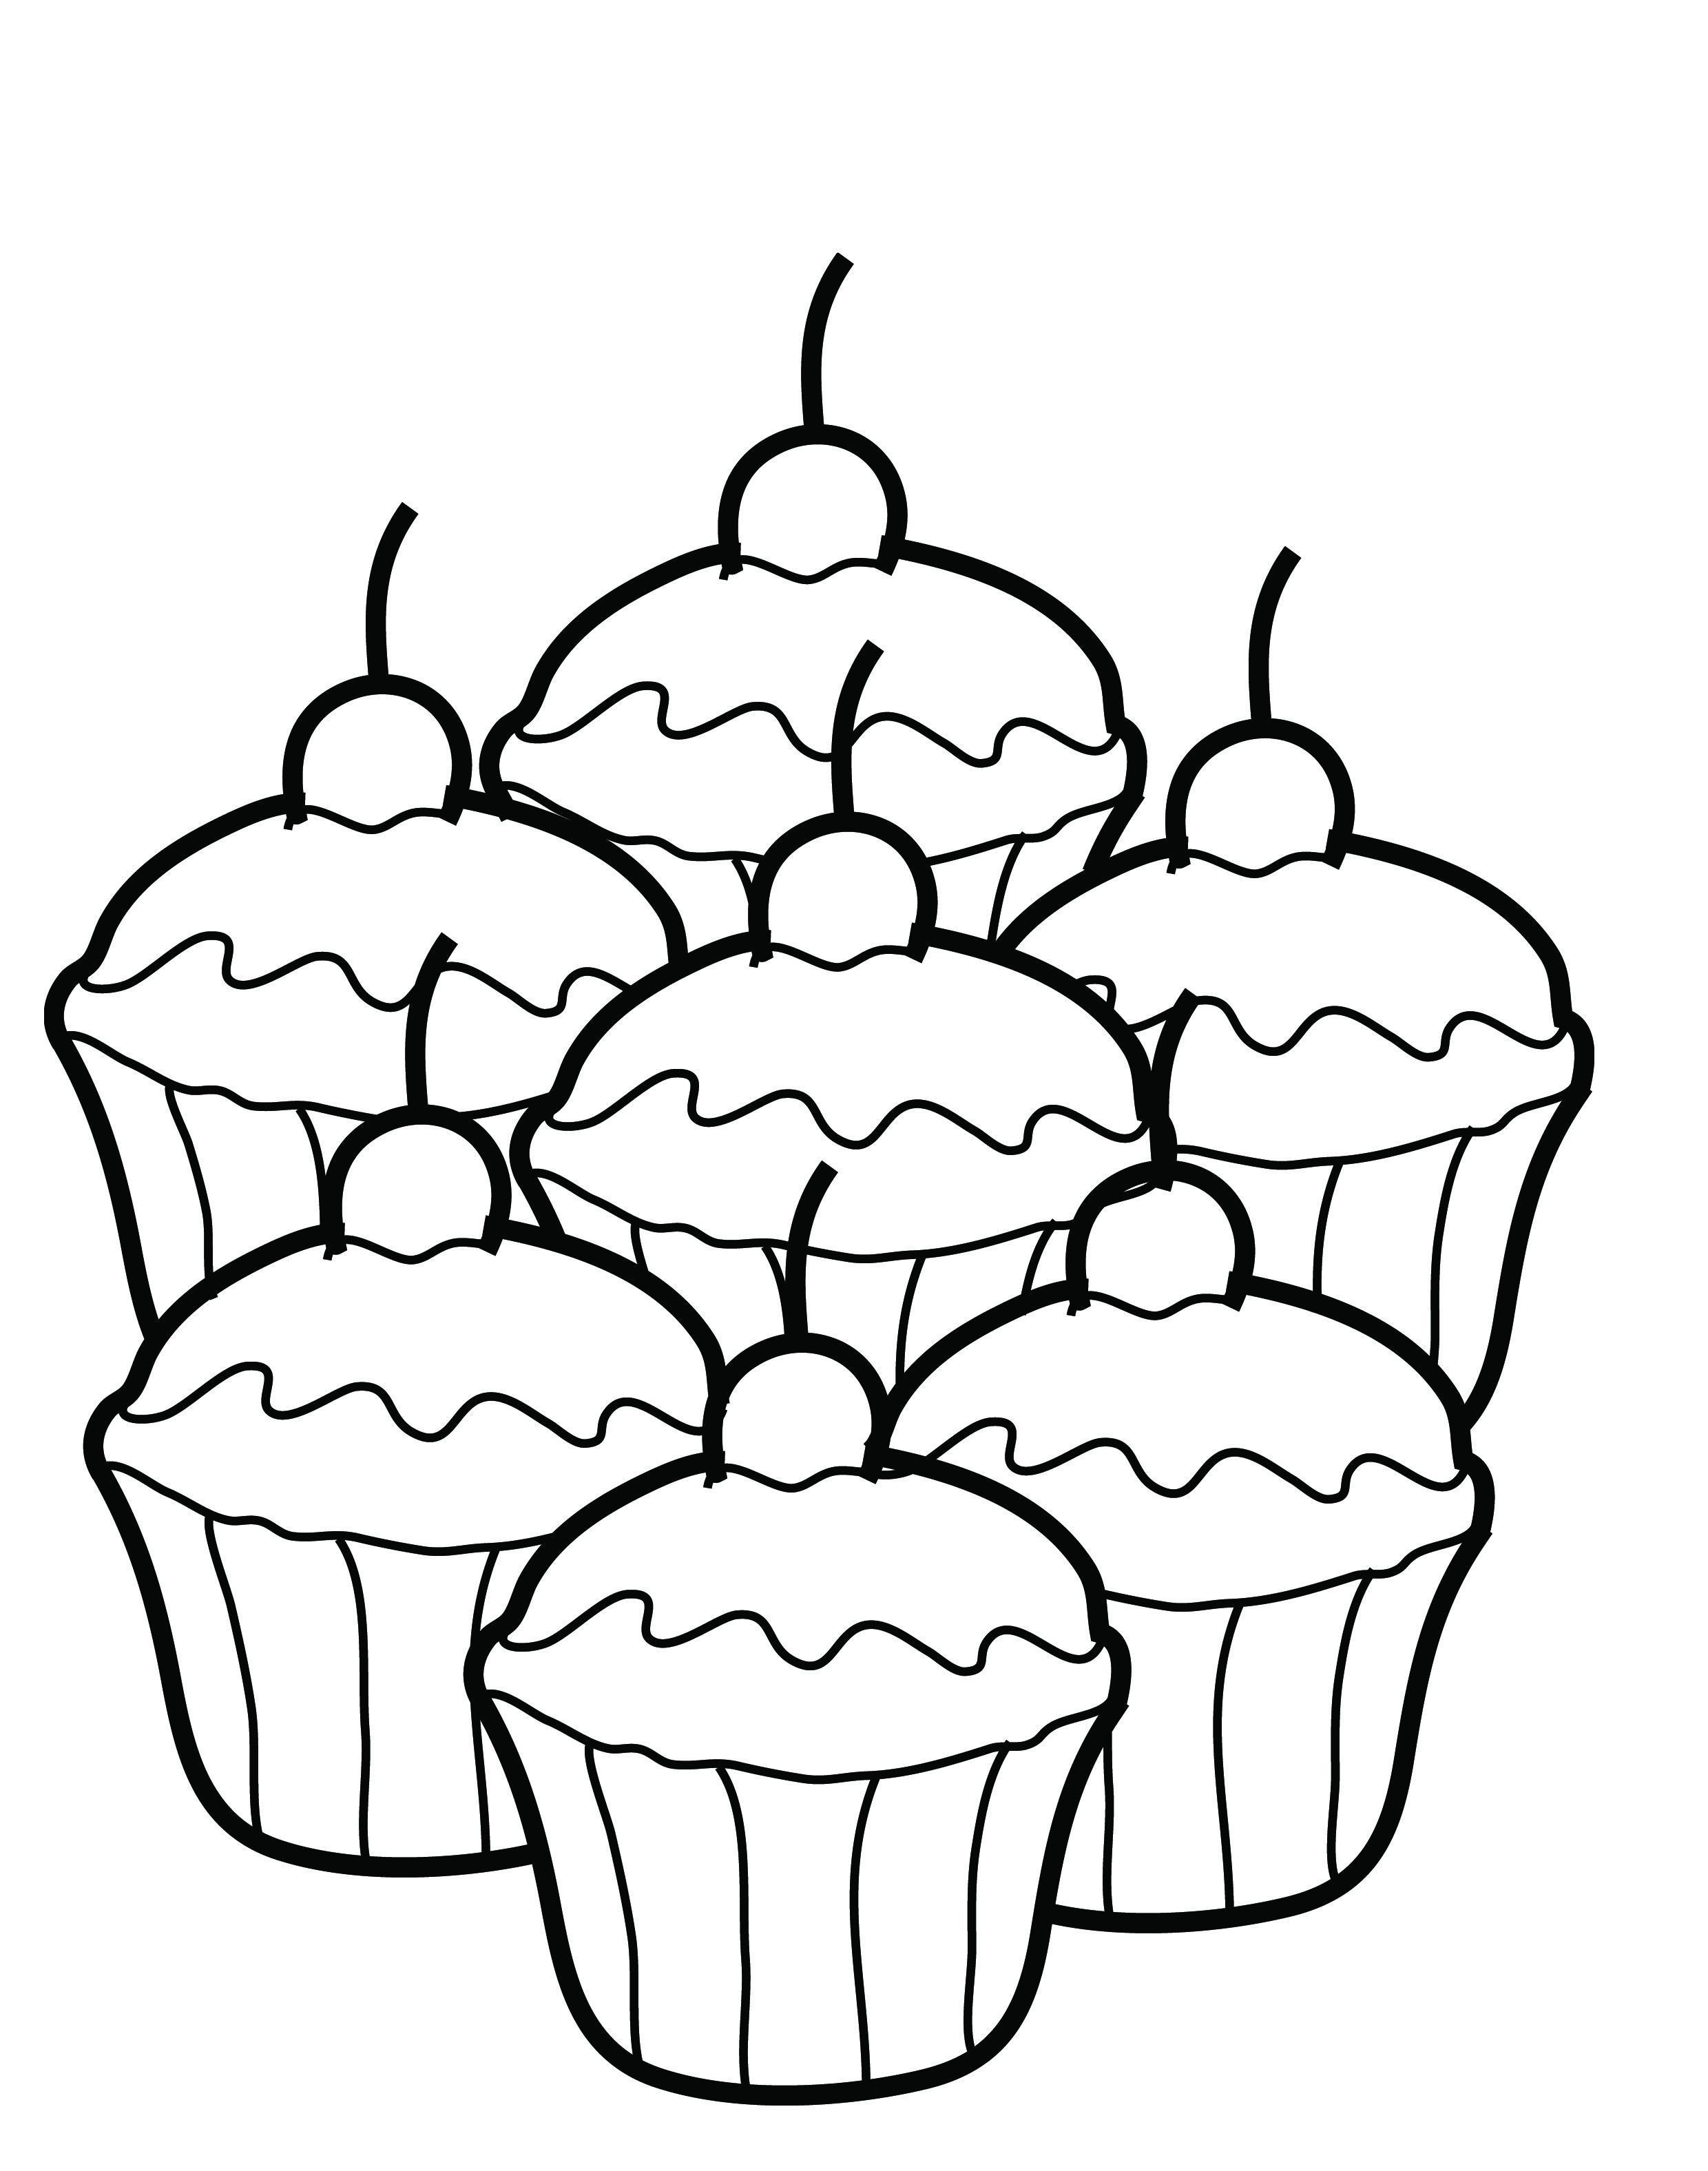 cupcake coloring pages for kids - Coloring Sheet For Kids